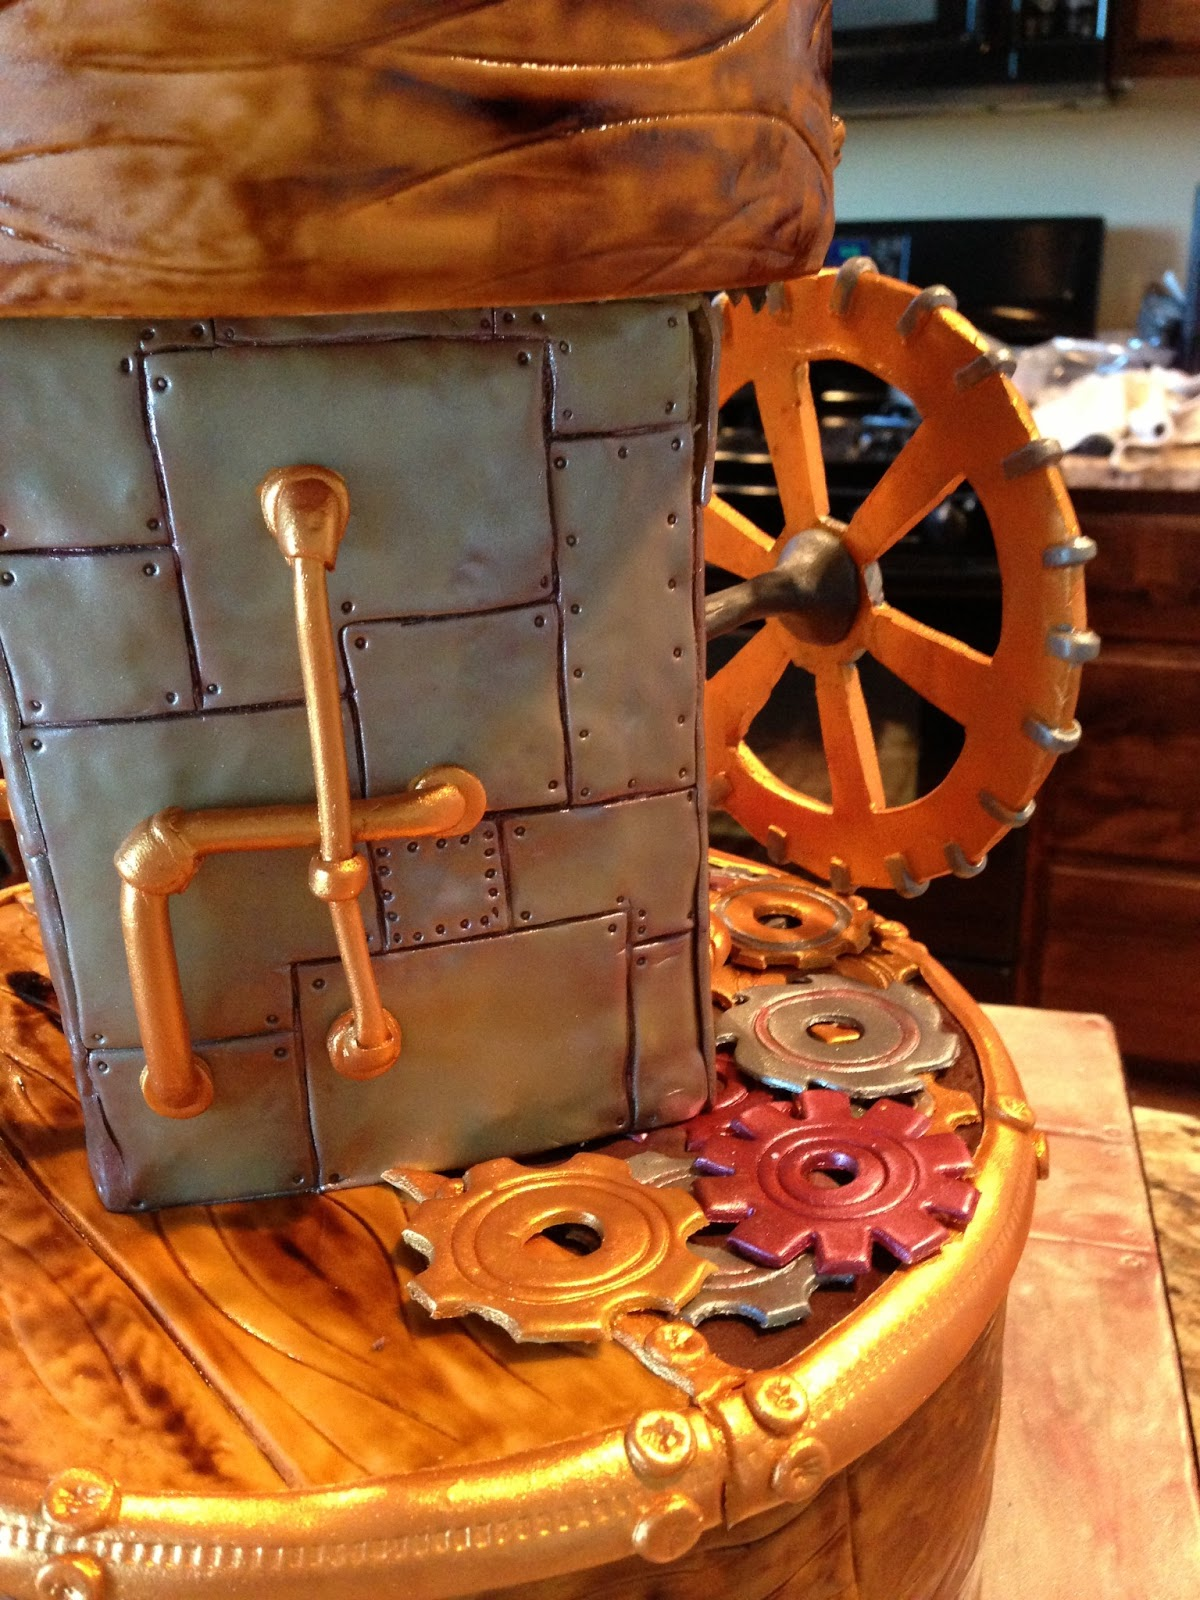 Delectable Cakes Steampunk Iron Man Cake